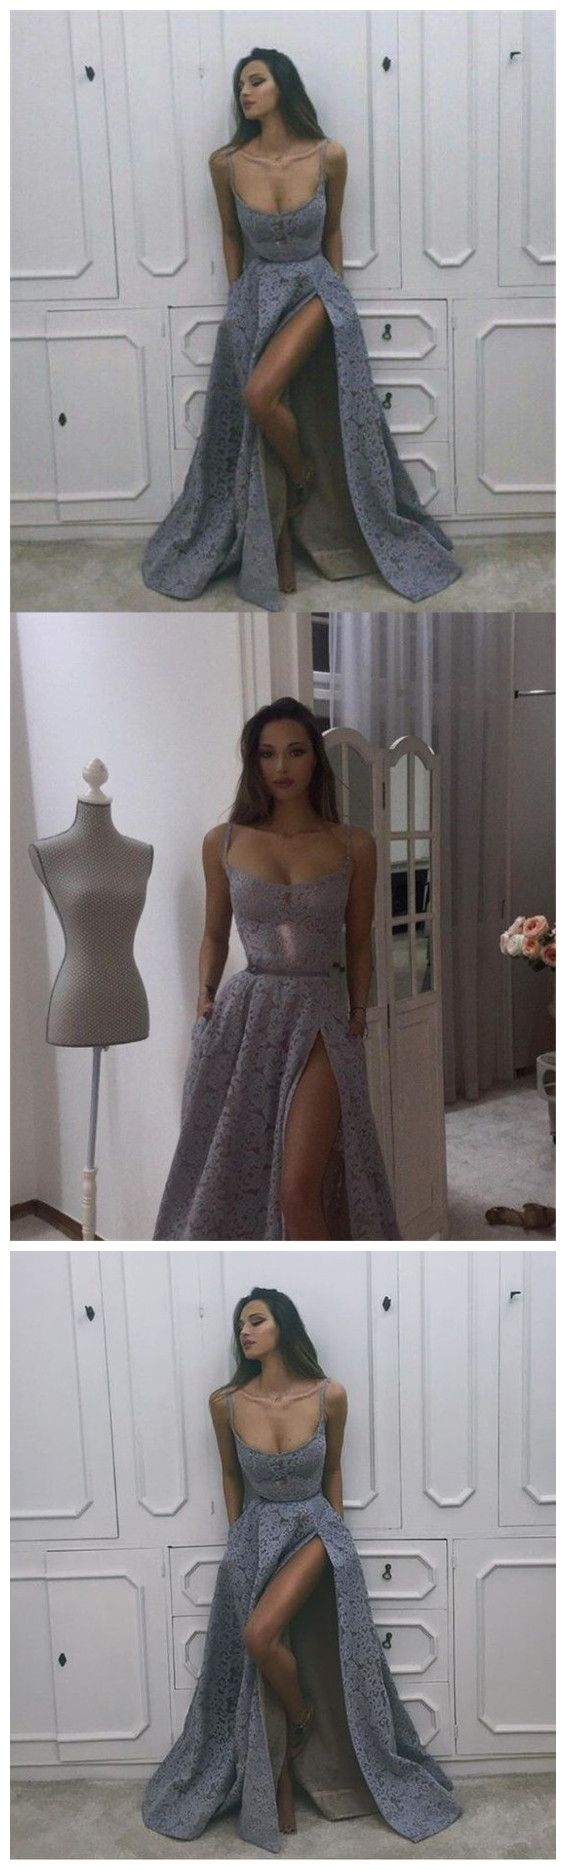 New Arrival Prom Dresses,Affordable Cheap Lace Modest Prom Dress, Prom Gowns, Fashion Popular Prom Dresses P0570 #shoppingonline #promdresses #longpromdresses #slitpromdresses #2018promdresses #2018newstyles #fashions #styles #hiprom #silvergraypromdress